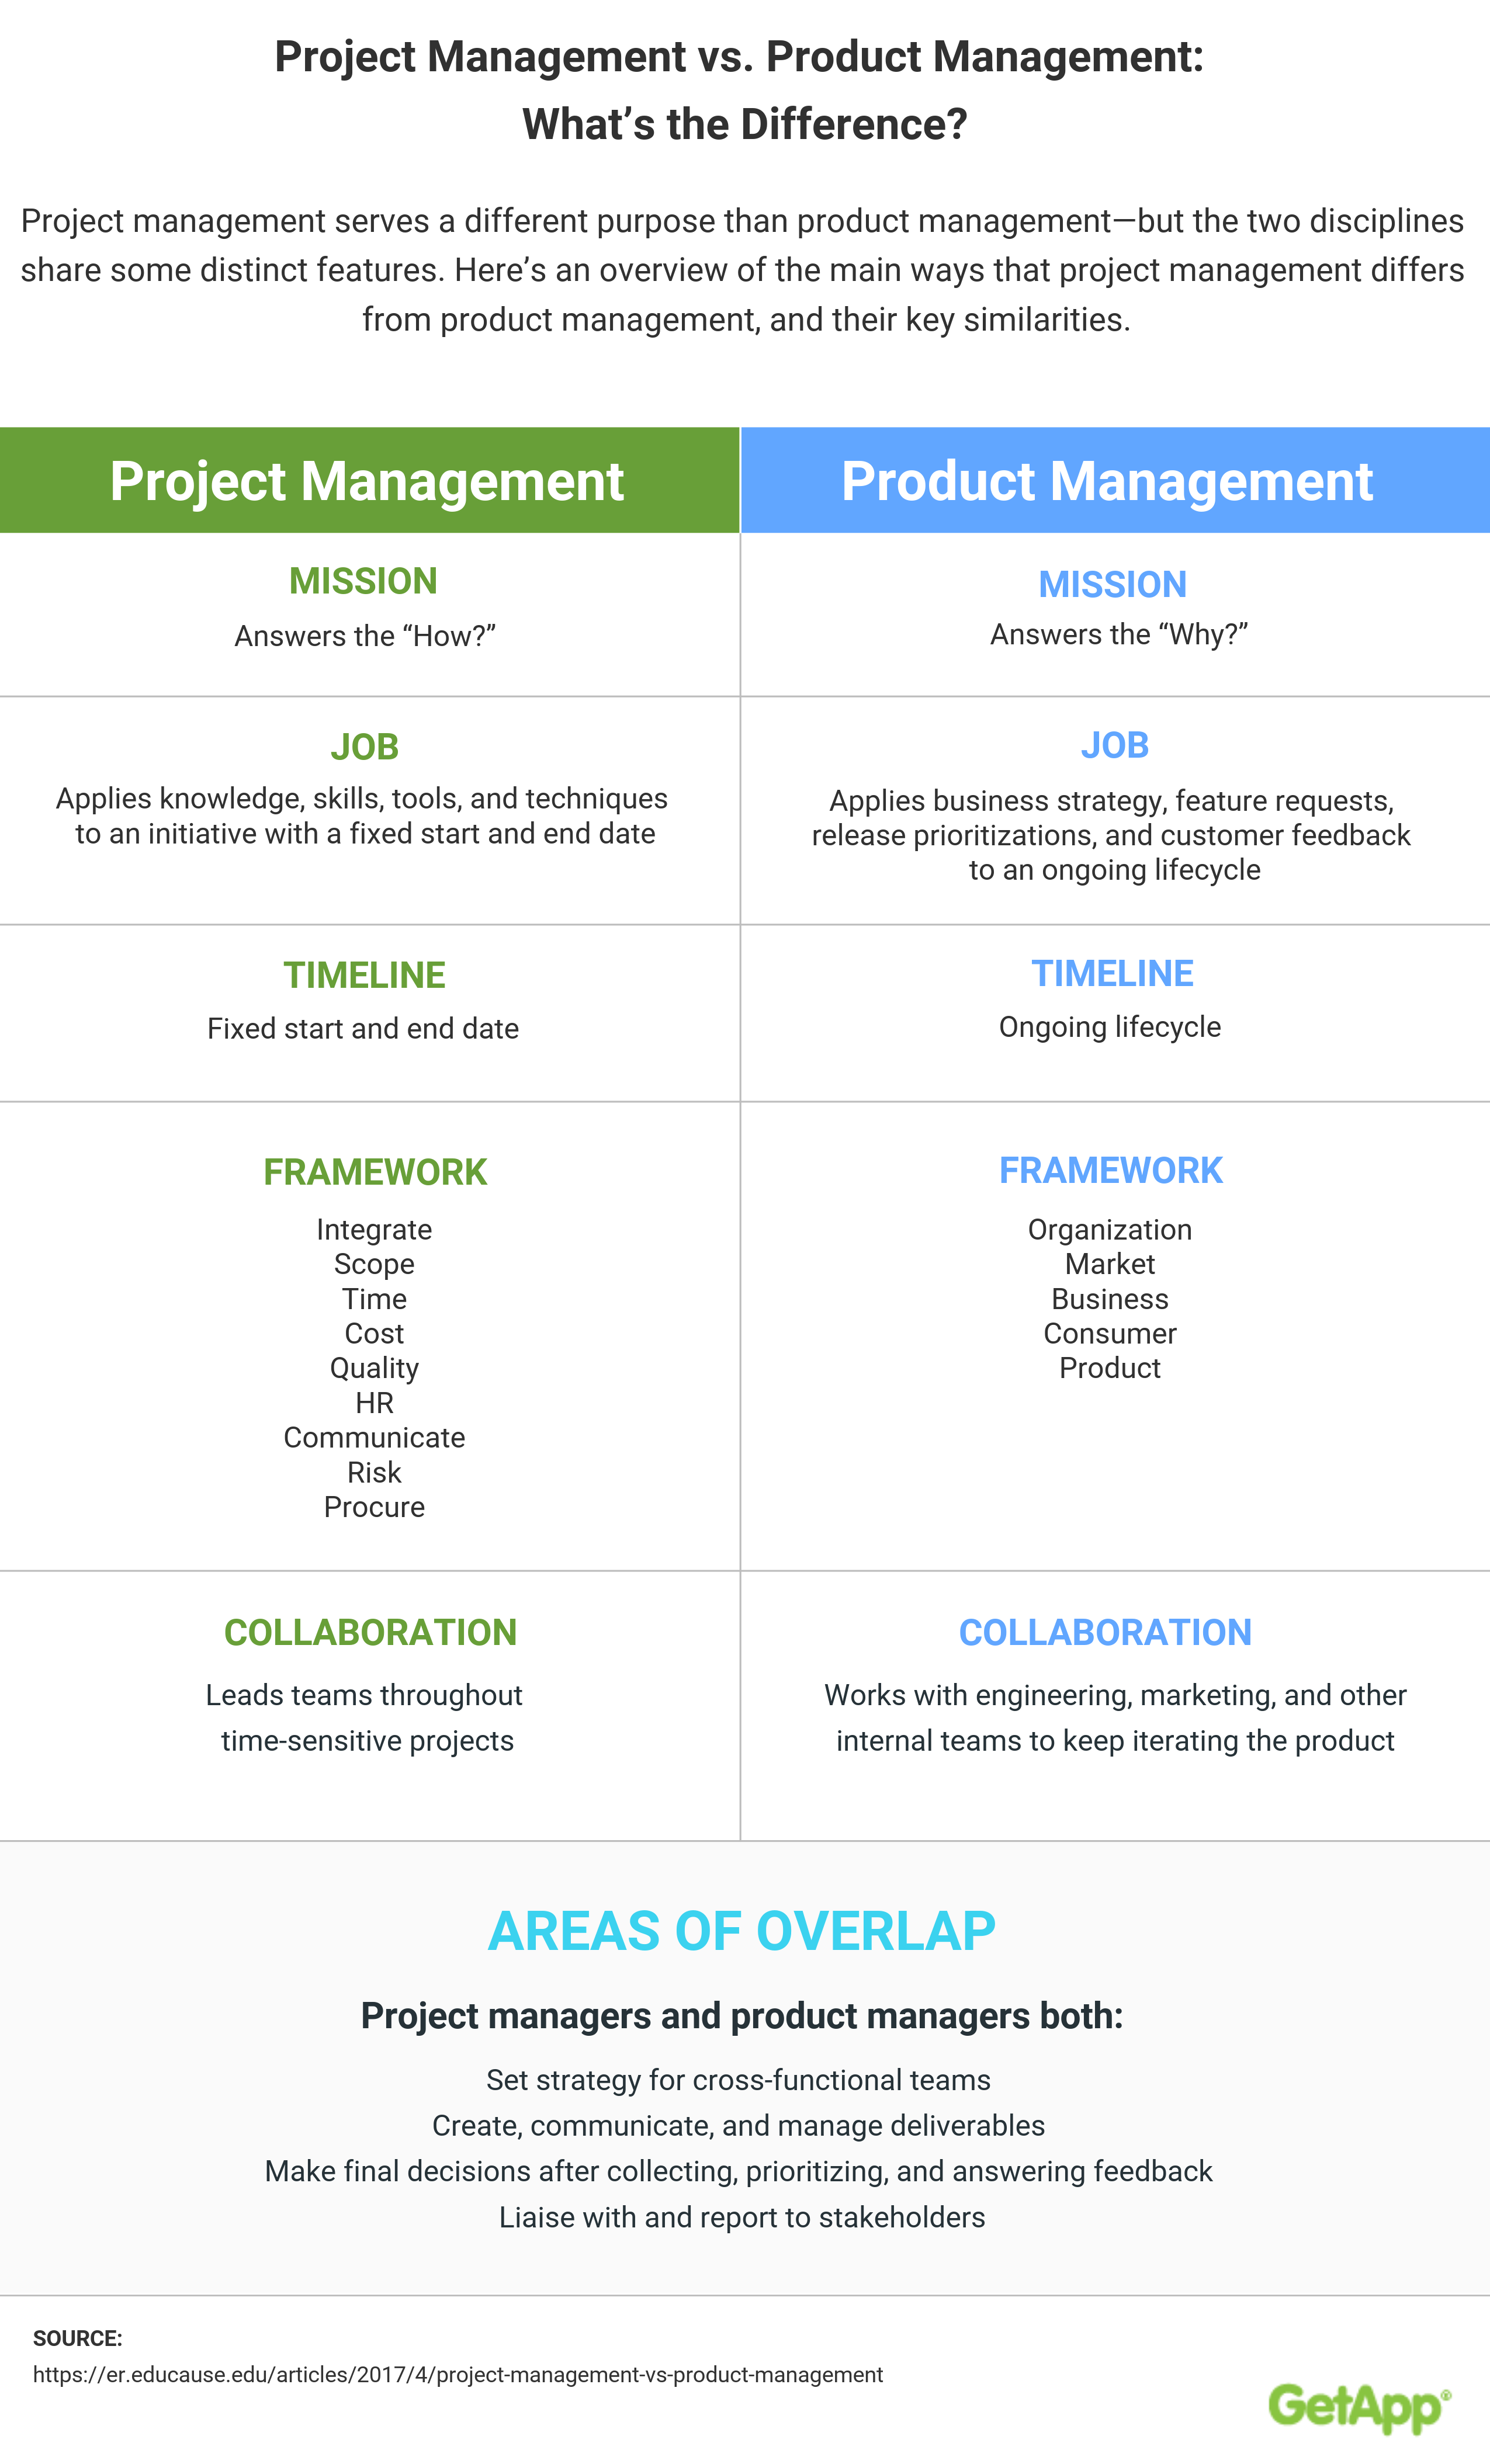 Project Management Vs Product Management What S The Difference Infographic Project Management Management Infographic